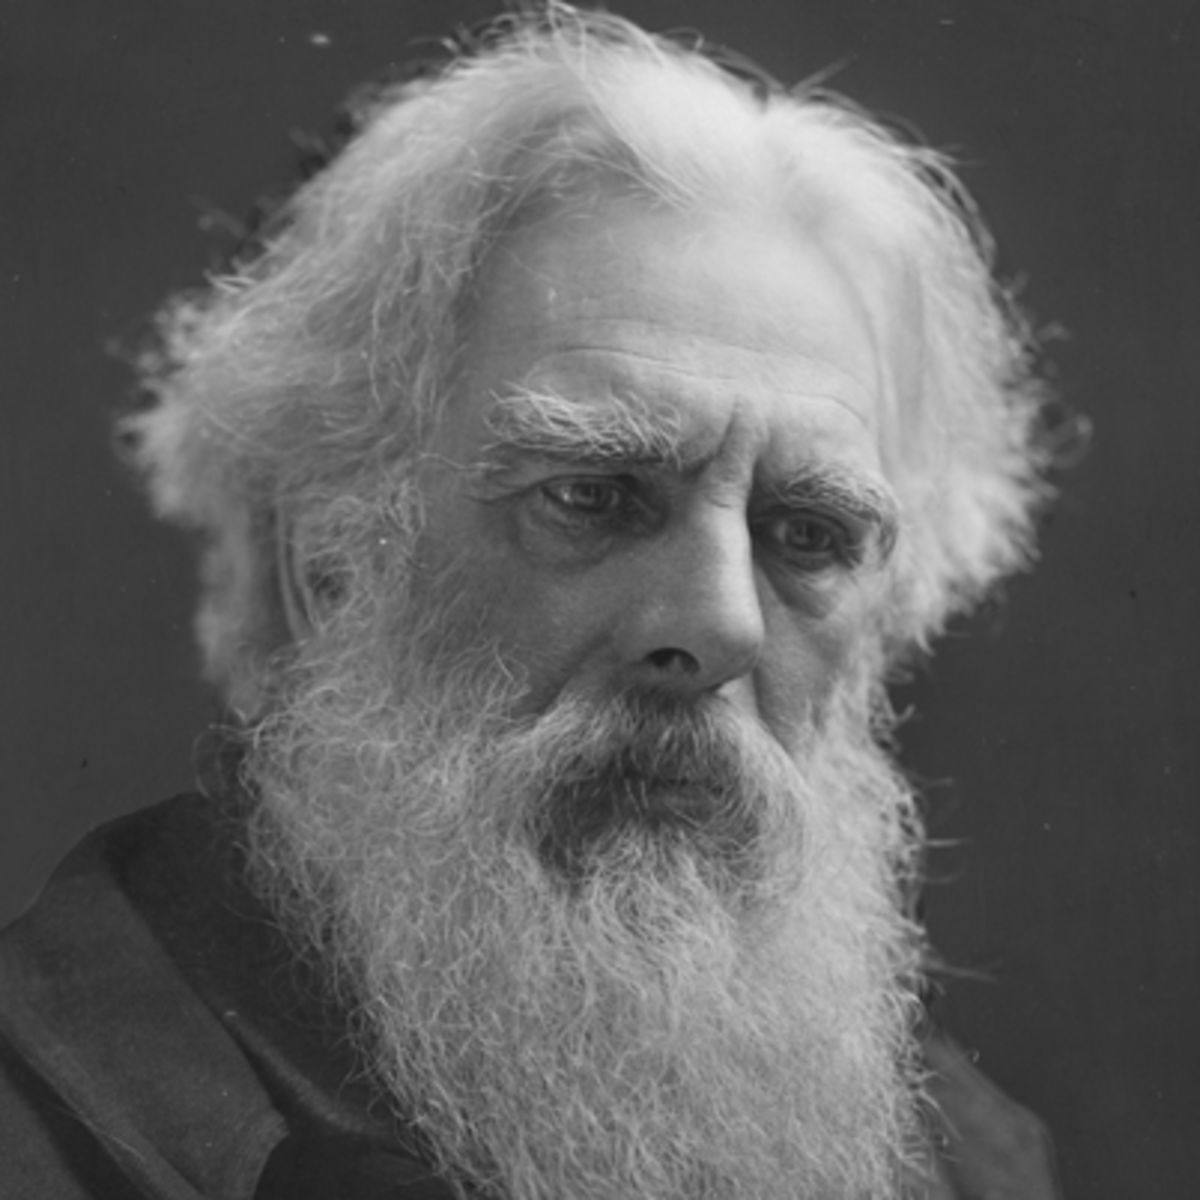 Eadweard Muybridge: pioneer of photography and motion pictures